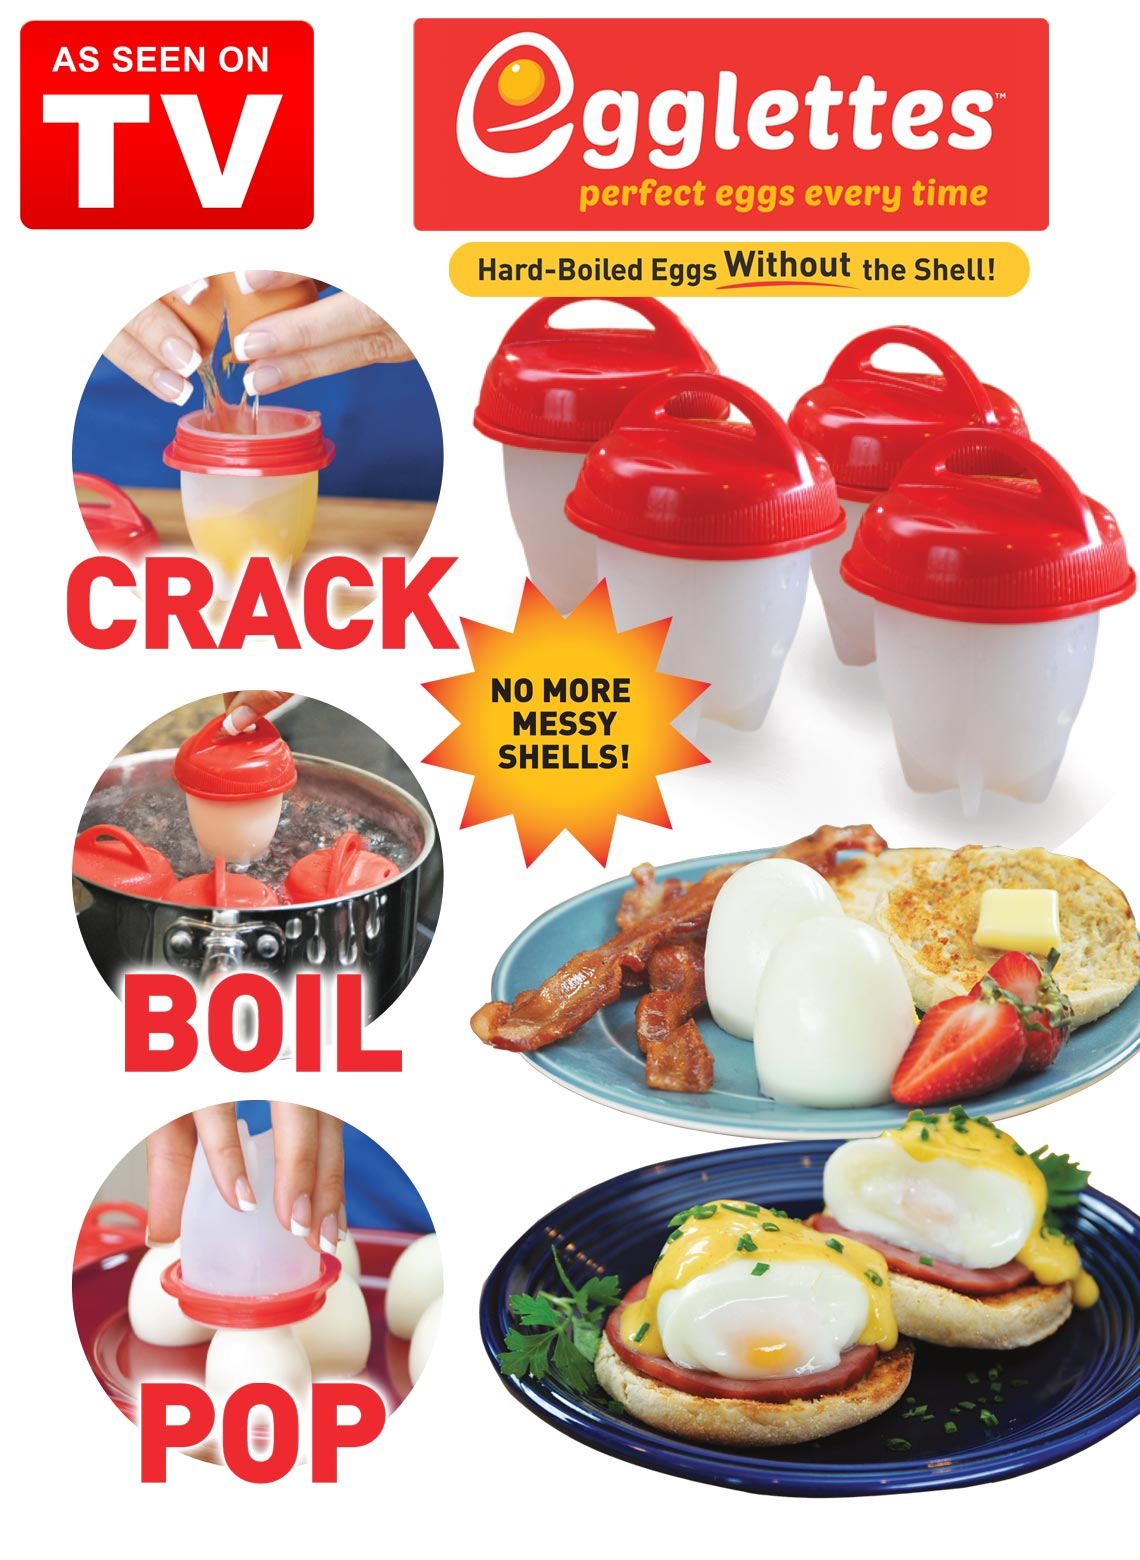 egglettes seen tv egg hard eggs items boil cook cookers compare carolwrightgifts drleonards shaped housewares zoom eggies holder roll